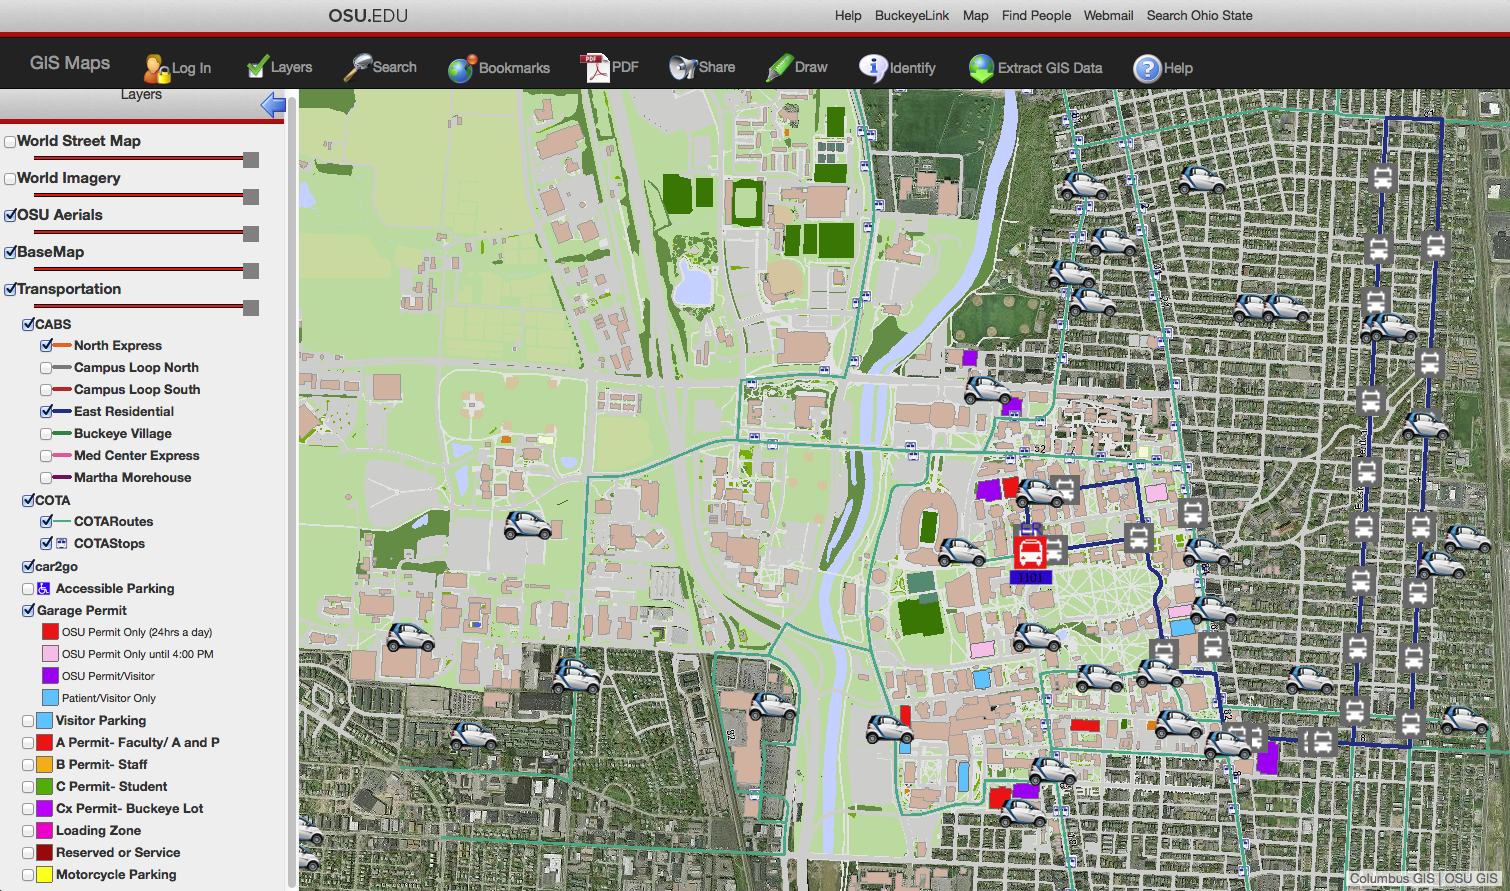 Ohio State Goes Live With Real Time Gis Maps Website